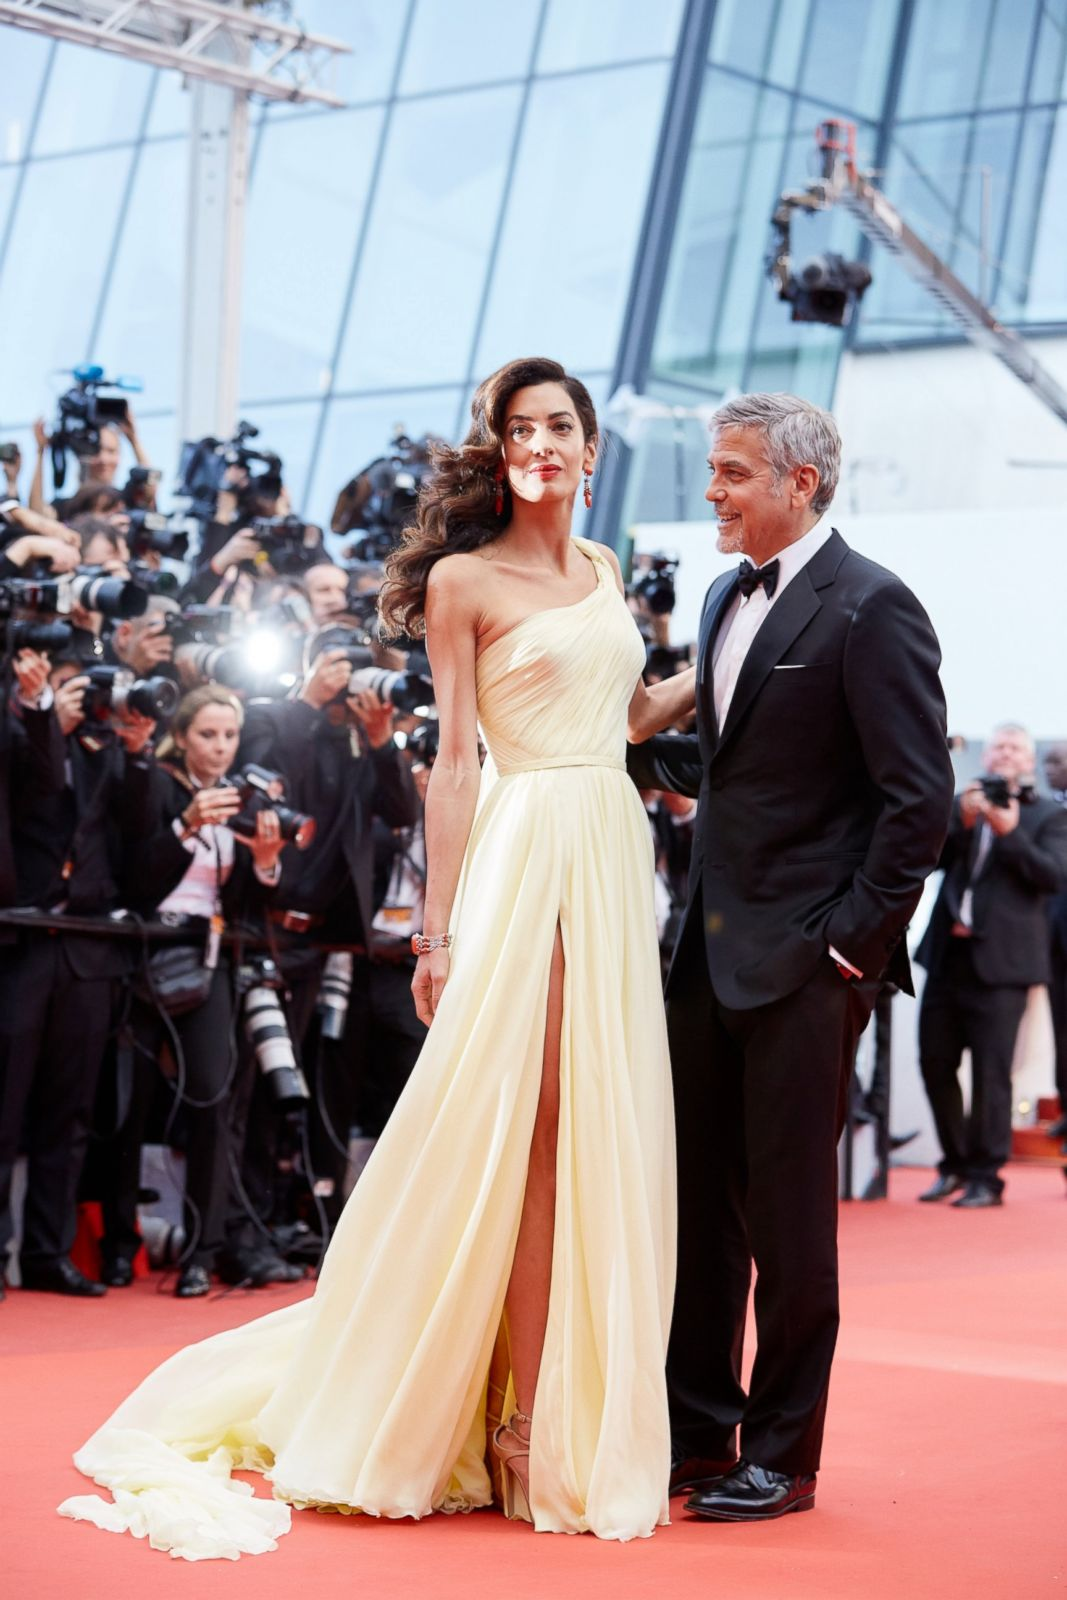 Amal Clooney Dazzles Alongside George Clooney Picture